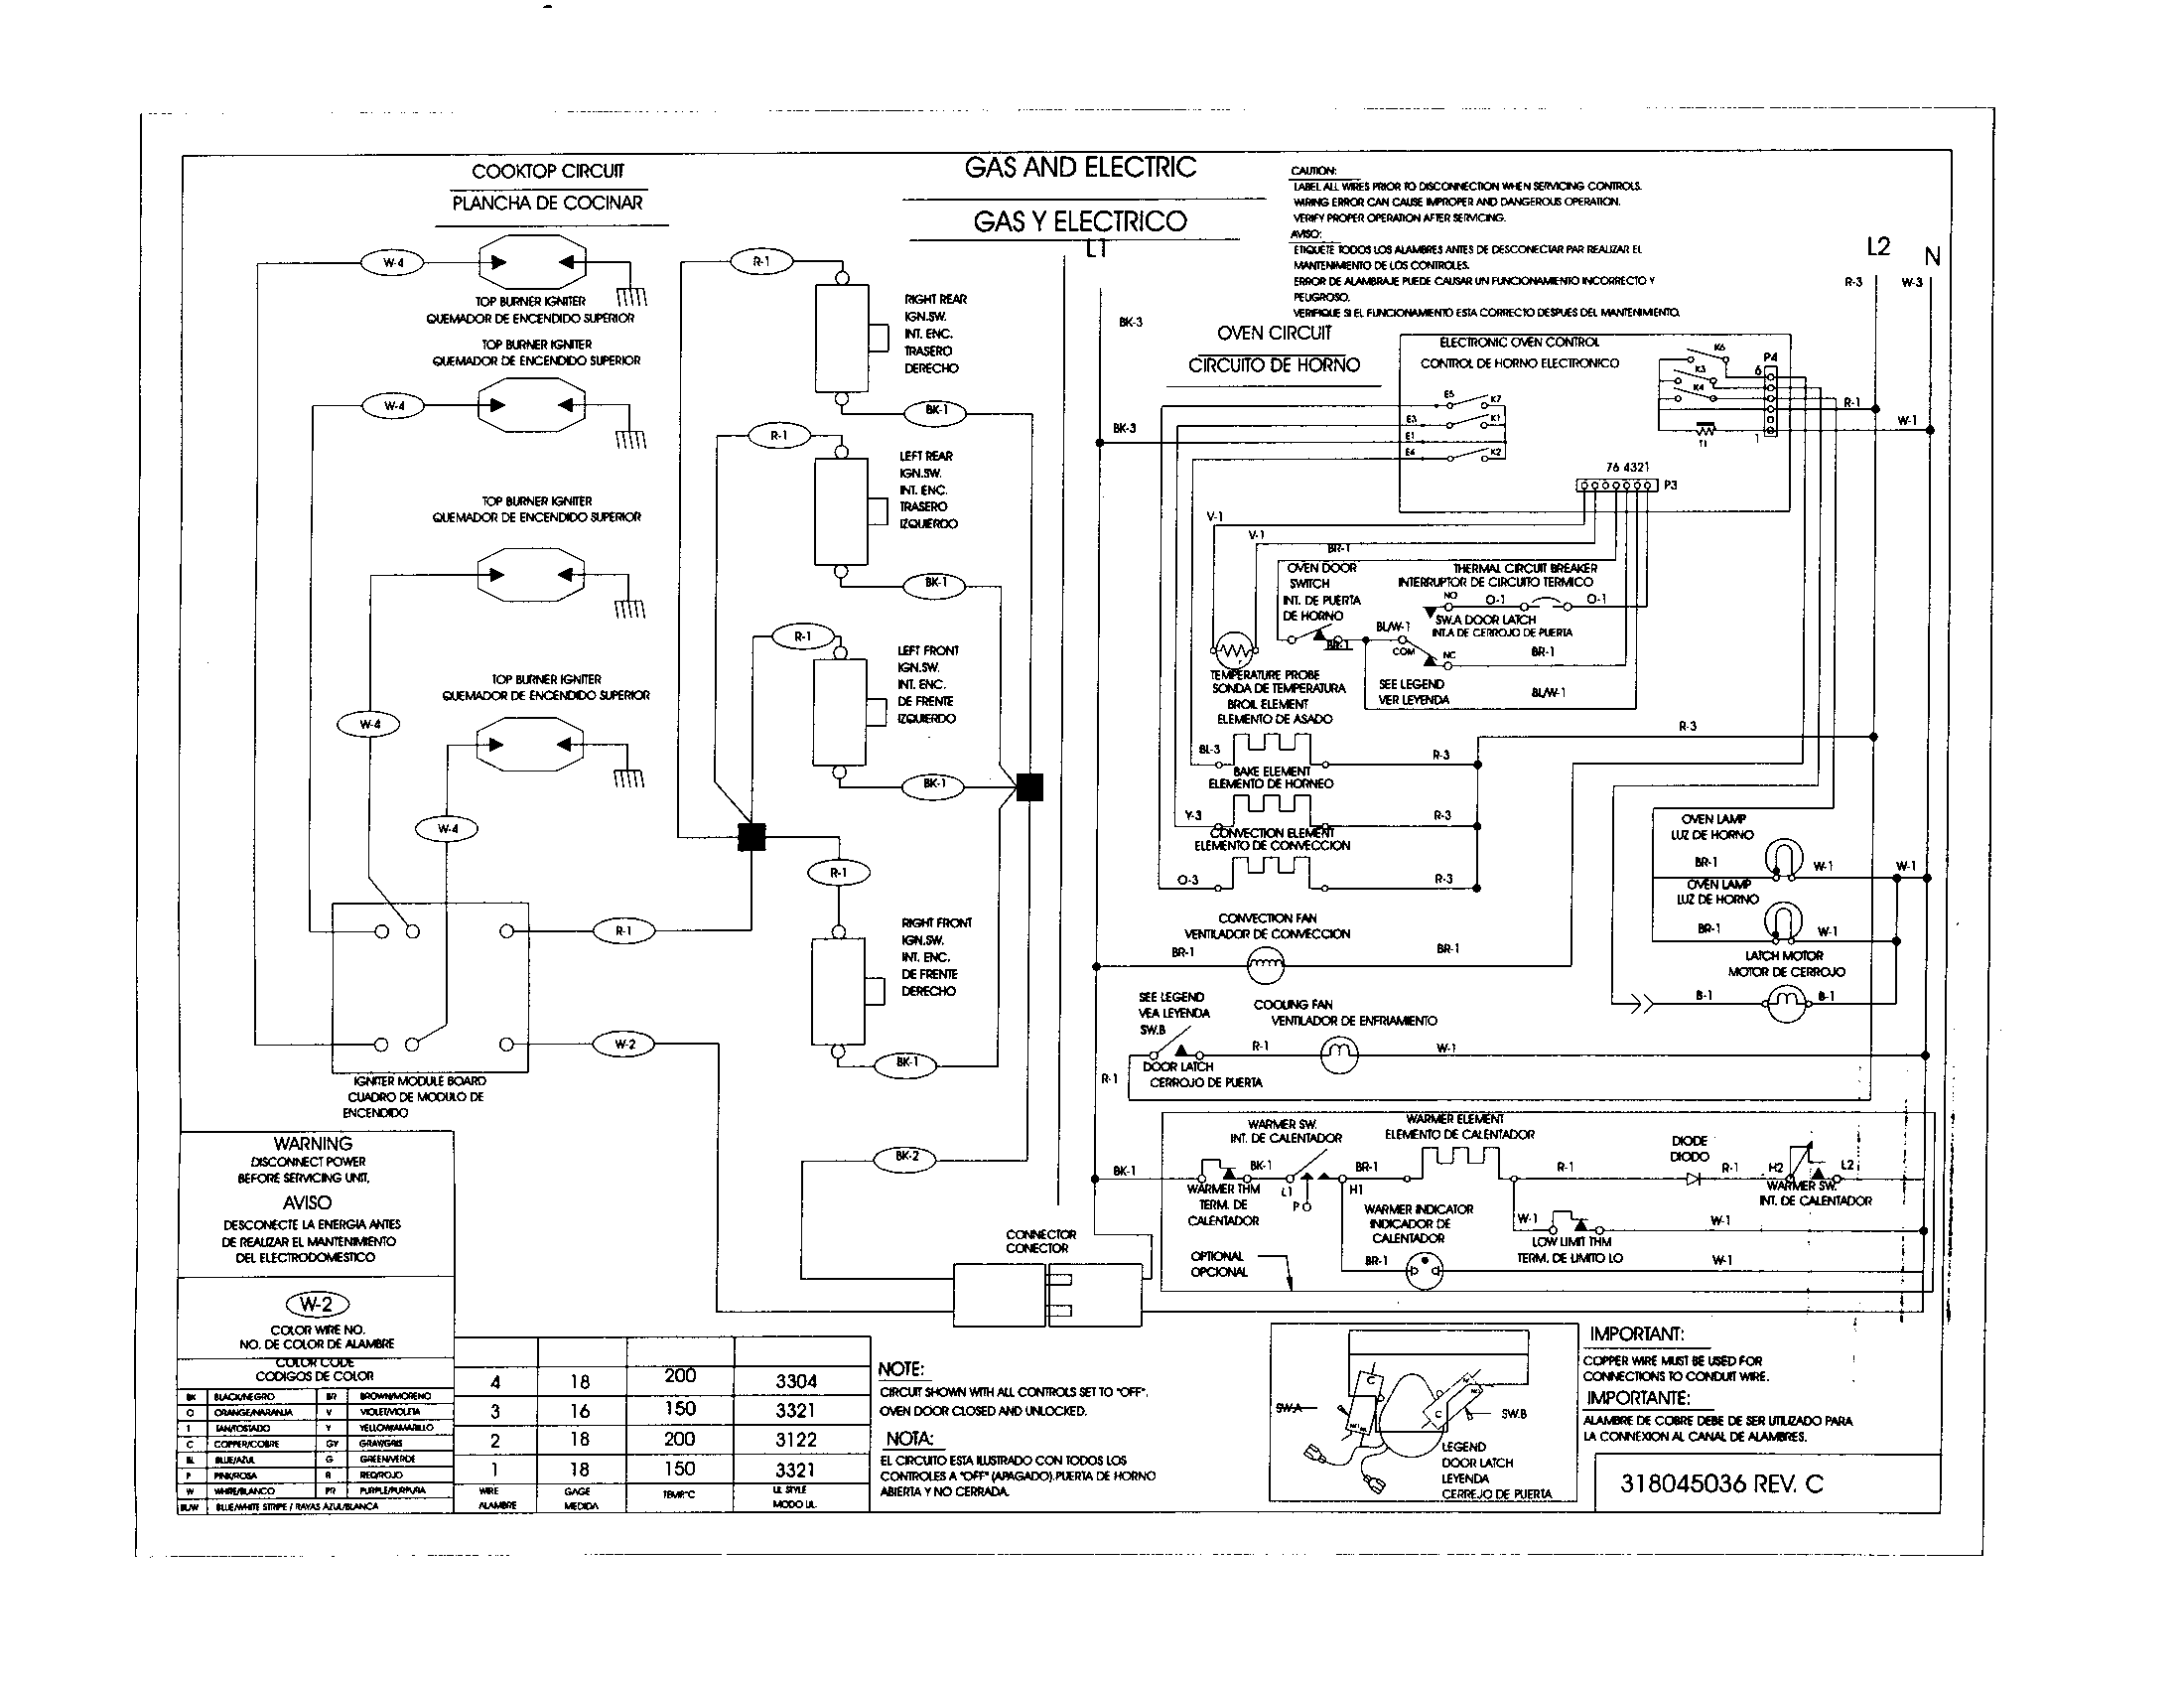 white rodgers zone valve wiring diagram with Appliance on Wiring Diagram White Rodgers Thermostat as well Page 2 in addition Weil Mclain Boilers Zone Valves Wiring Diagram in addition Appliance likewise Underfloor Heating Thermostat Wiring Diagram.